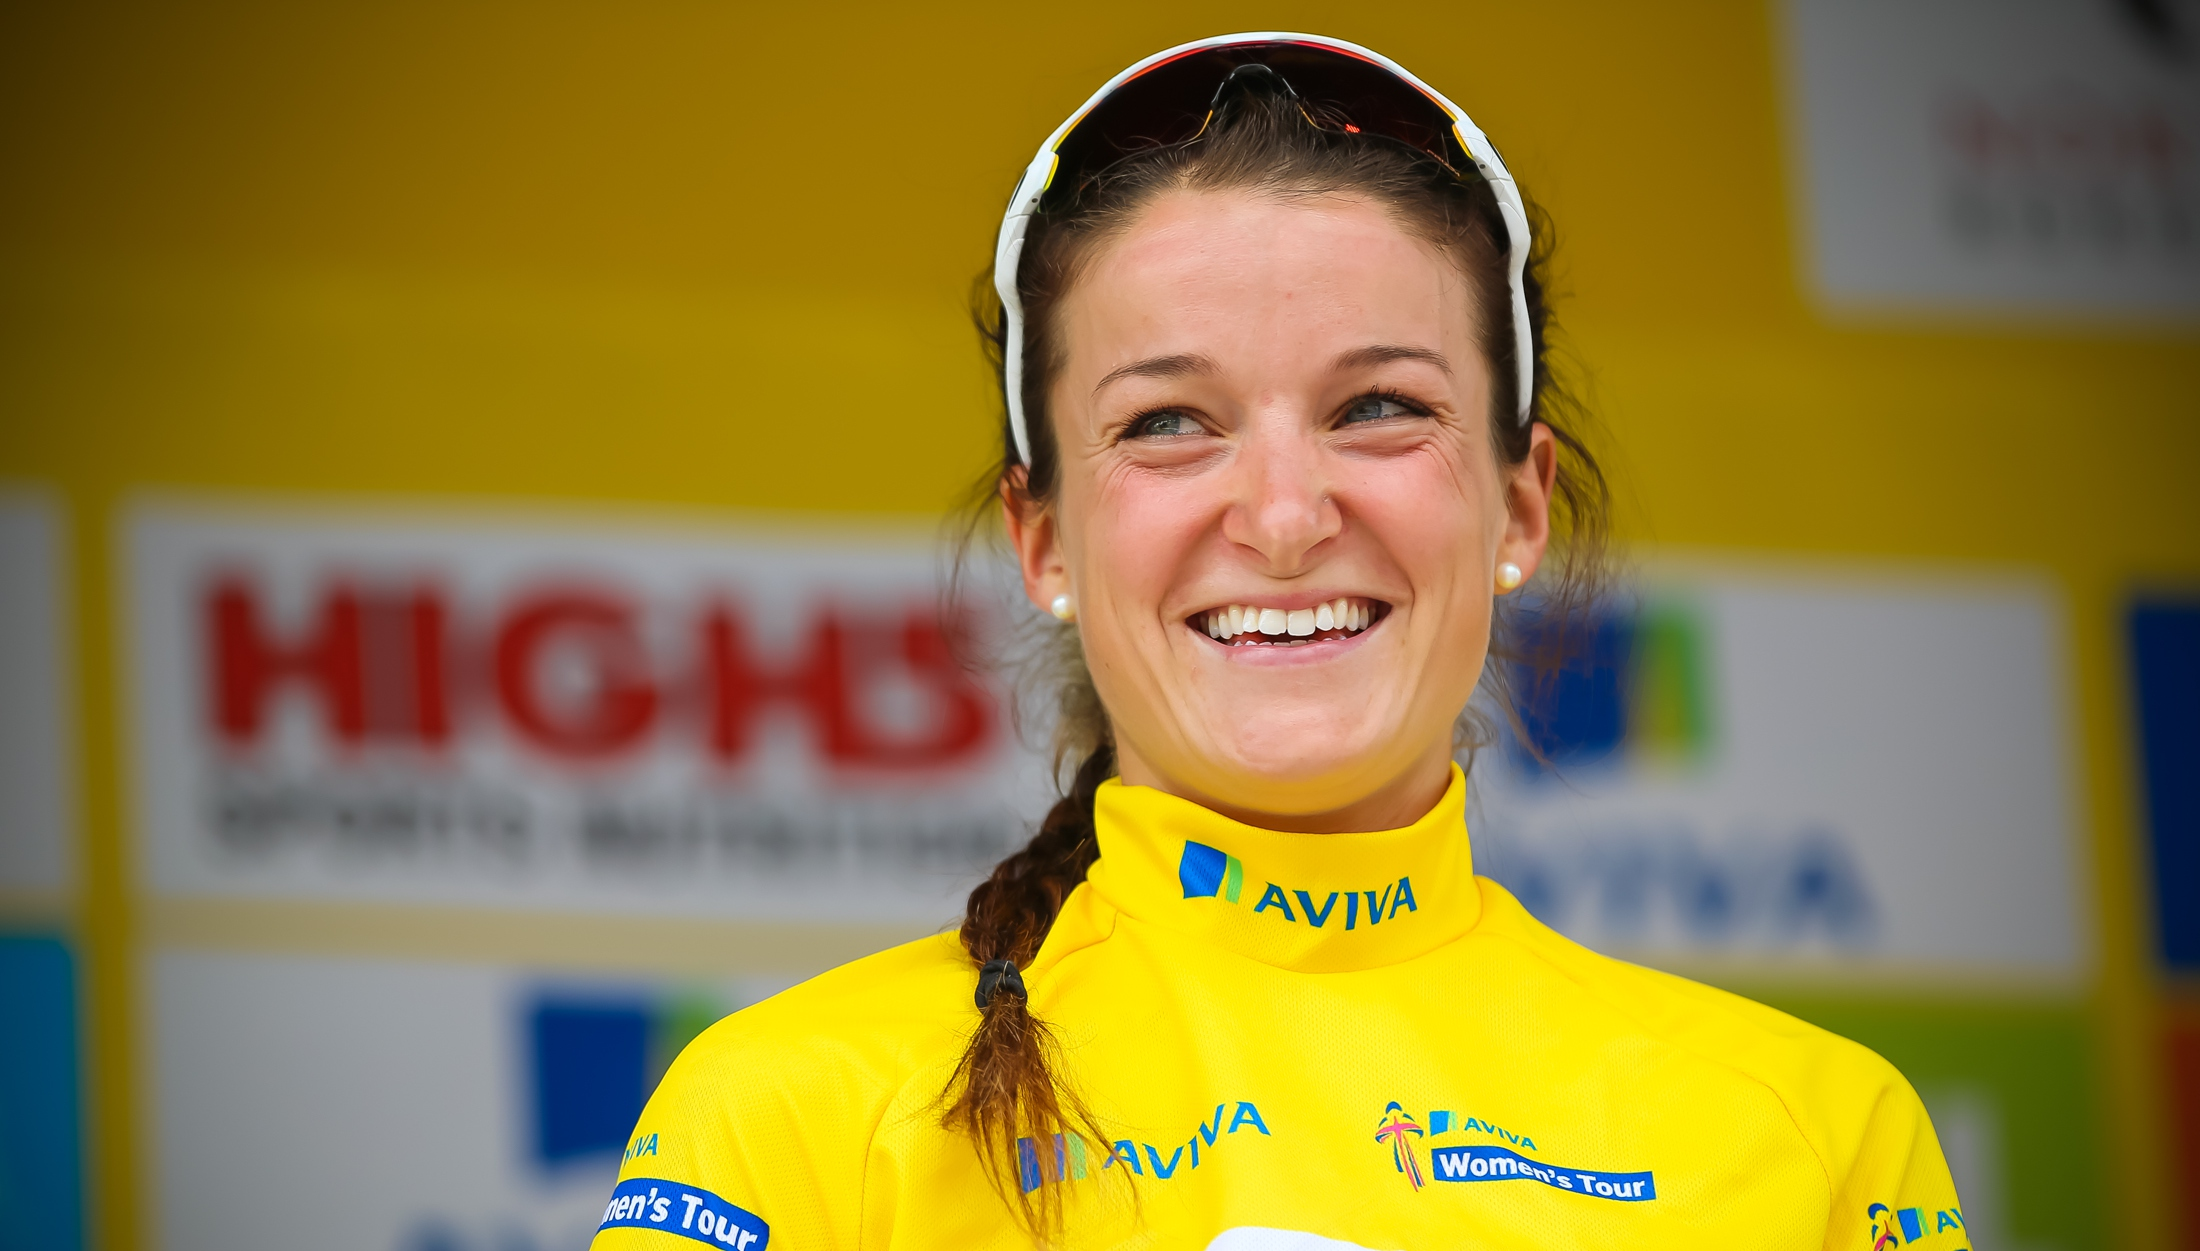 Your chance to WIN with the Aviva Women's Tour